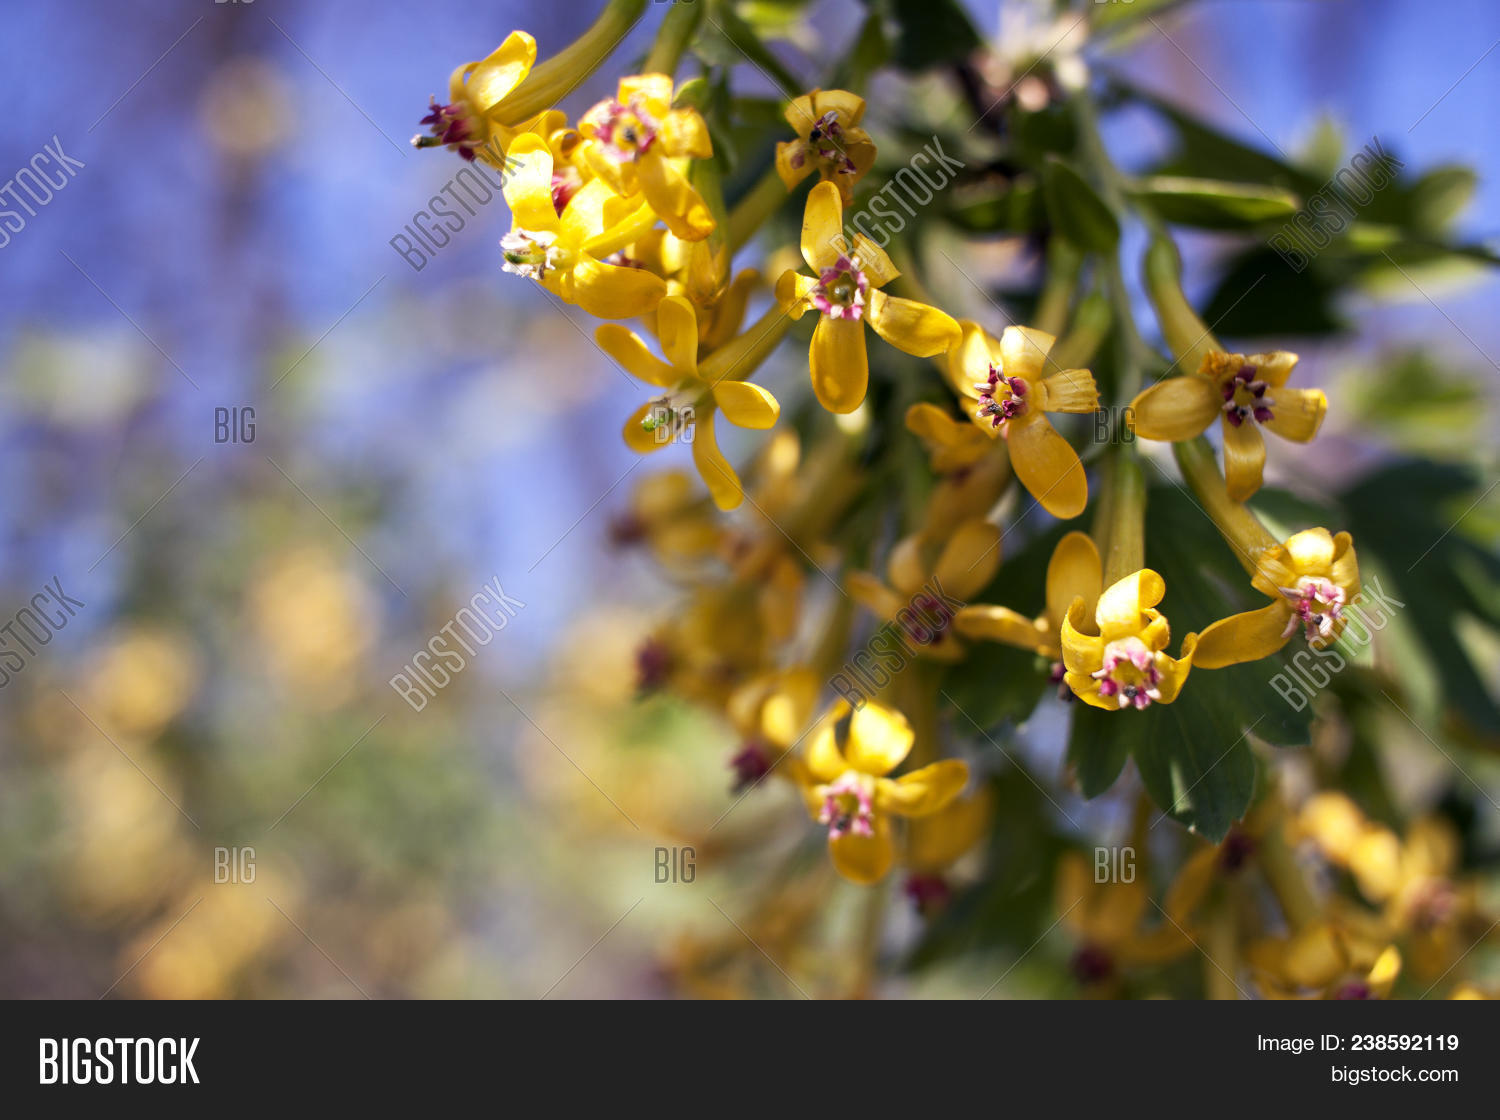 Flowering currant image photo free trial bigstock flowering currant yellow flowers in spring ribes aureum mightylinksfo